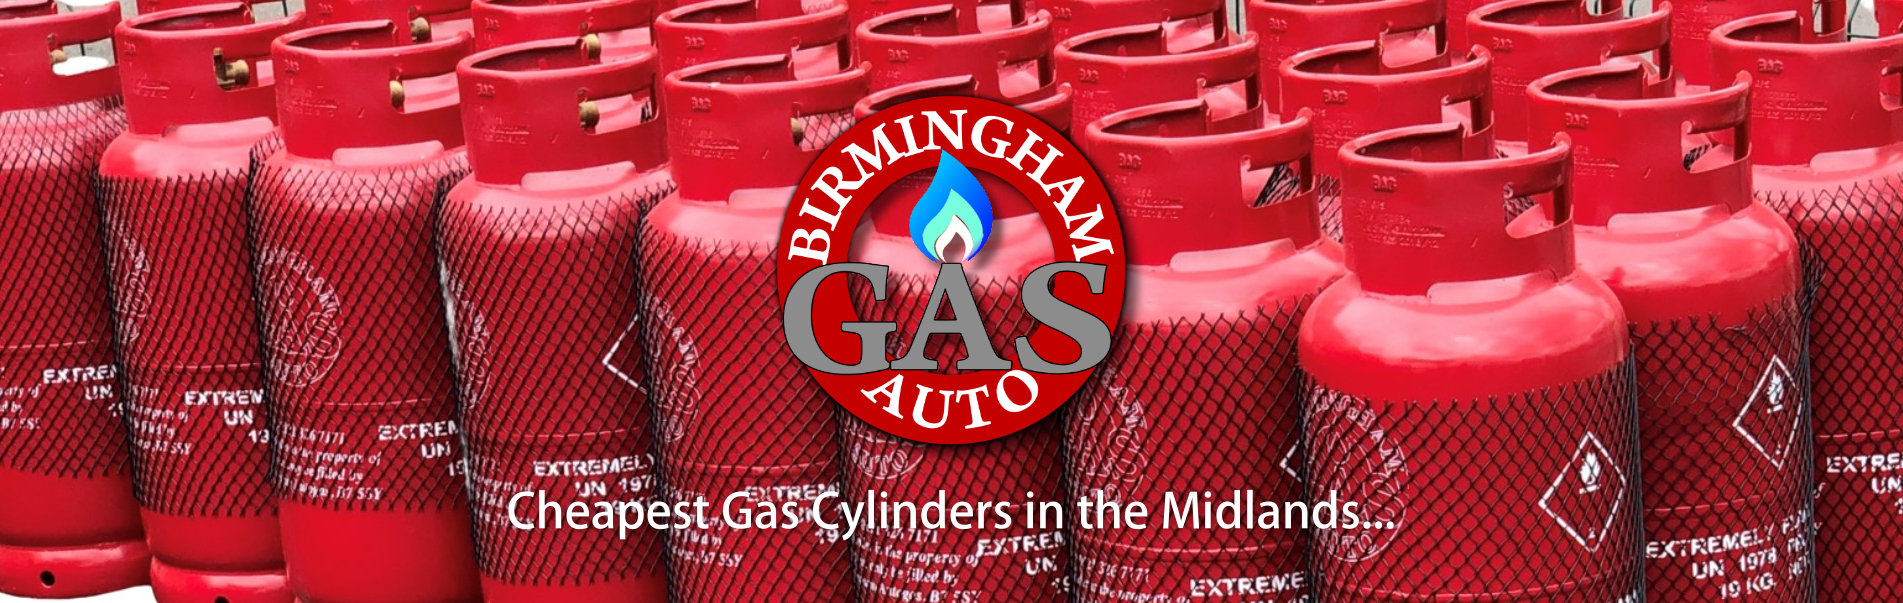 Cheapest Gas Cylinders in the Midlands